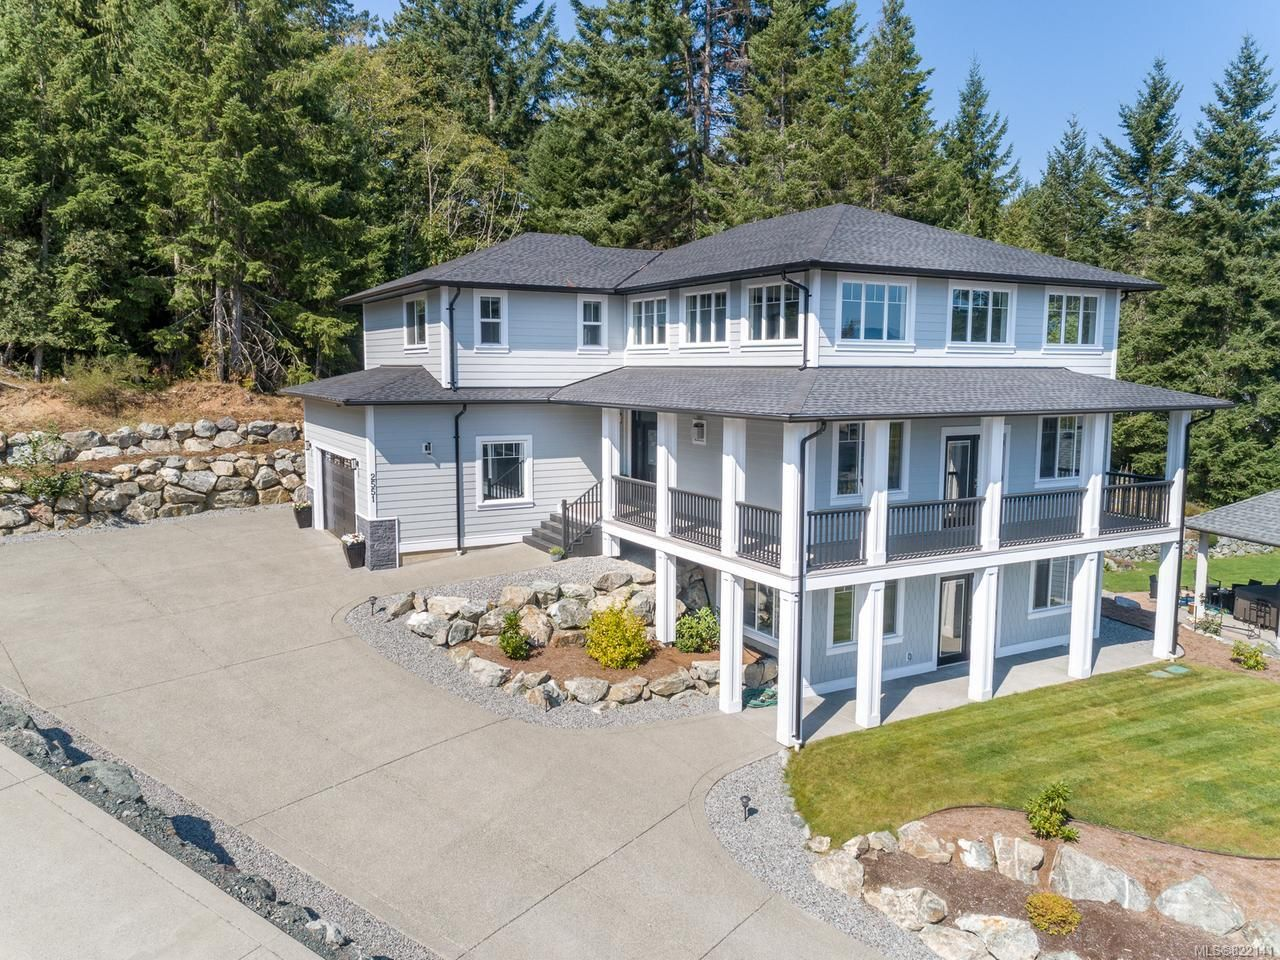 Main Photo: 2551 Stubbs Rd in : ML Mill Bay House for sale (Malahat & Area)  : MLS®# 822141